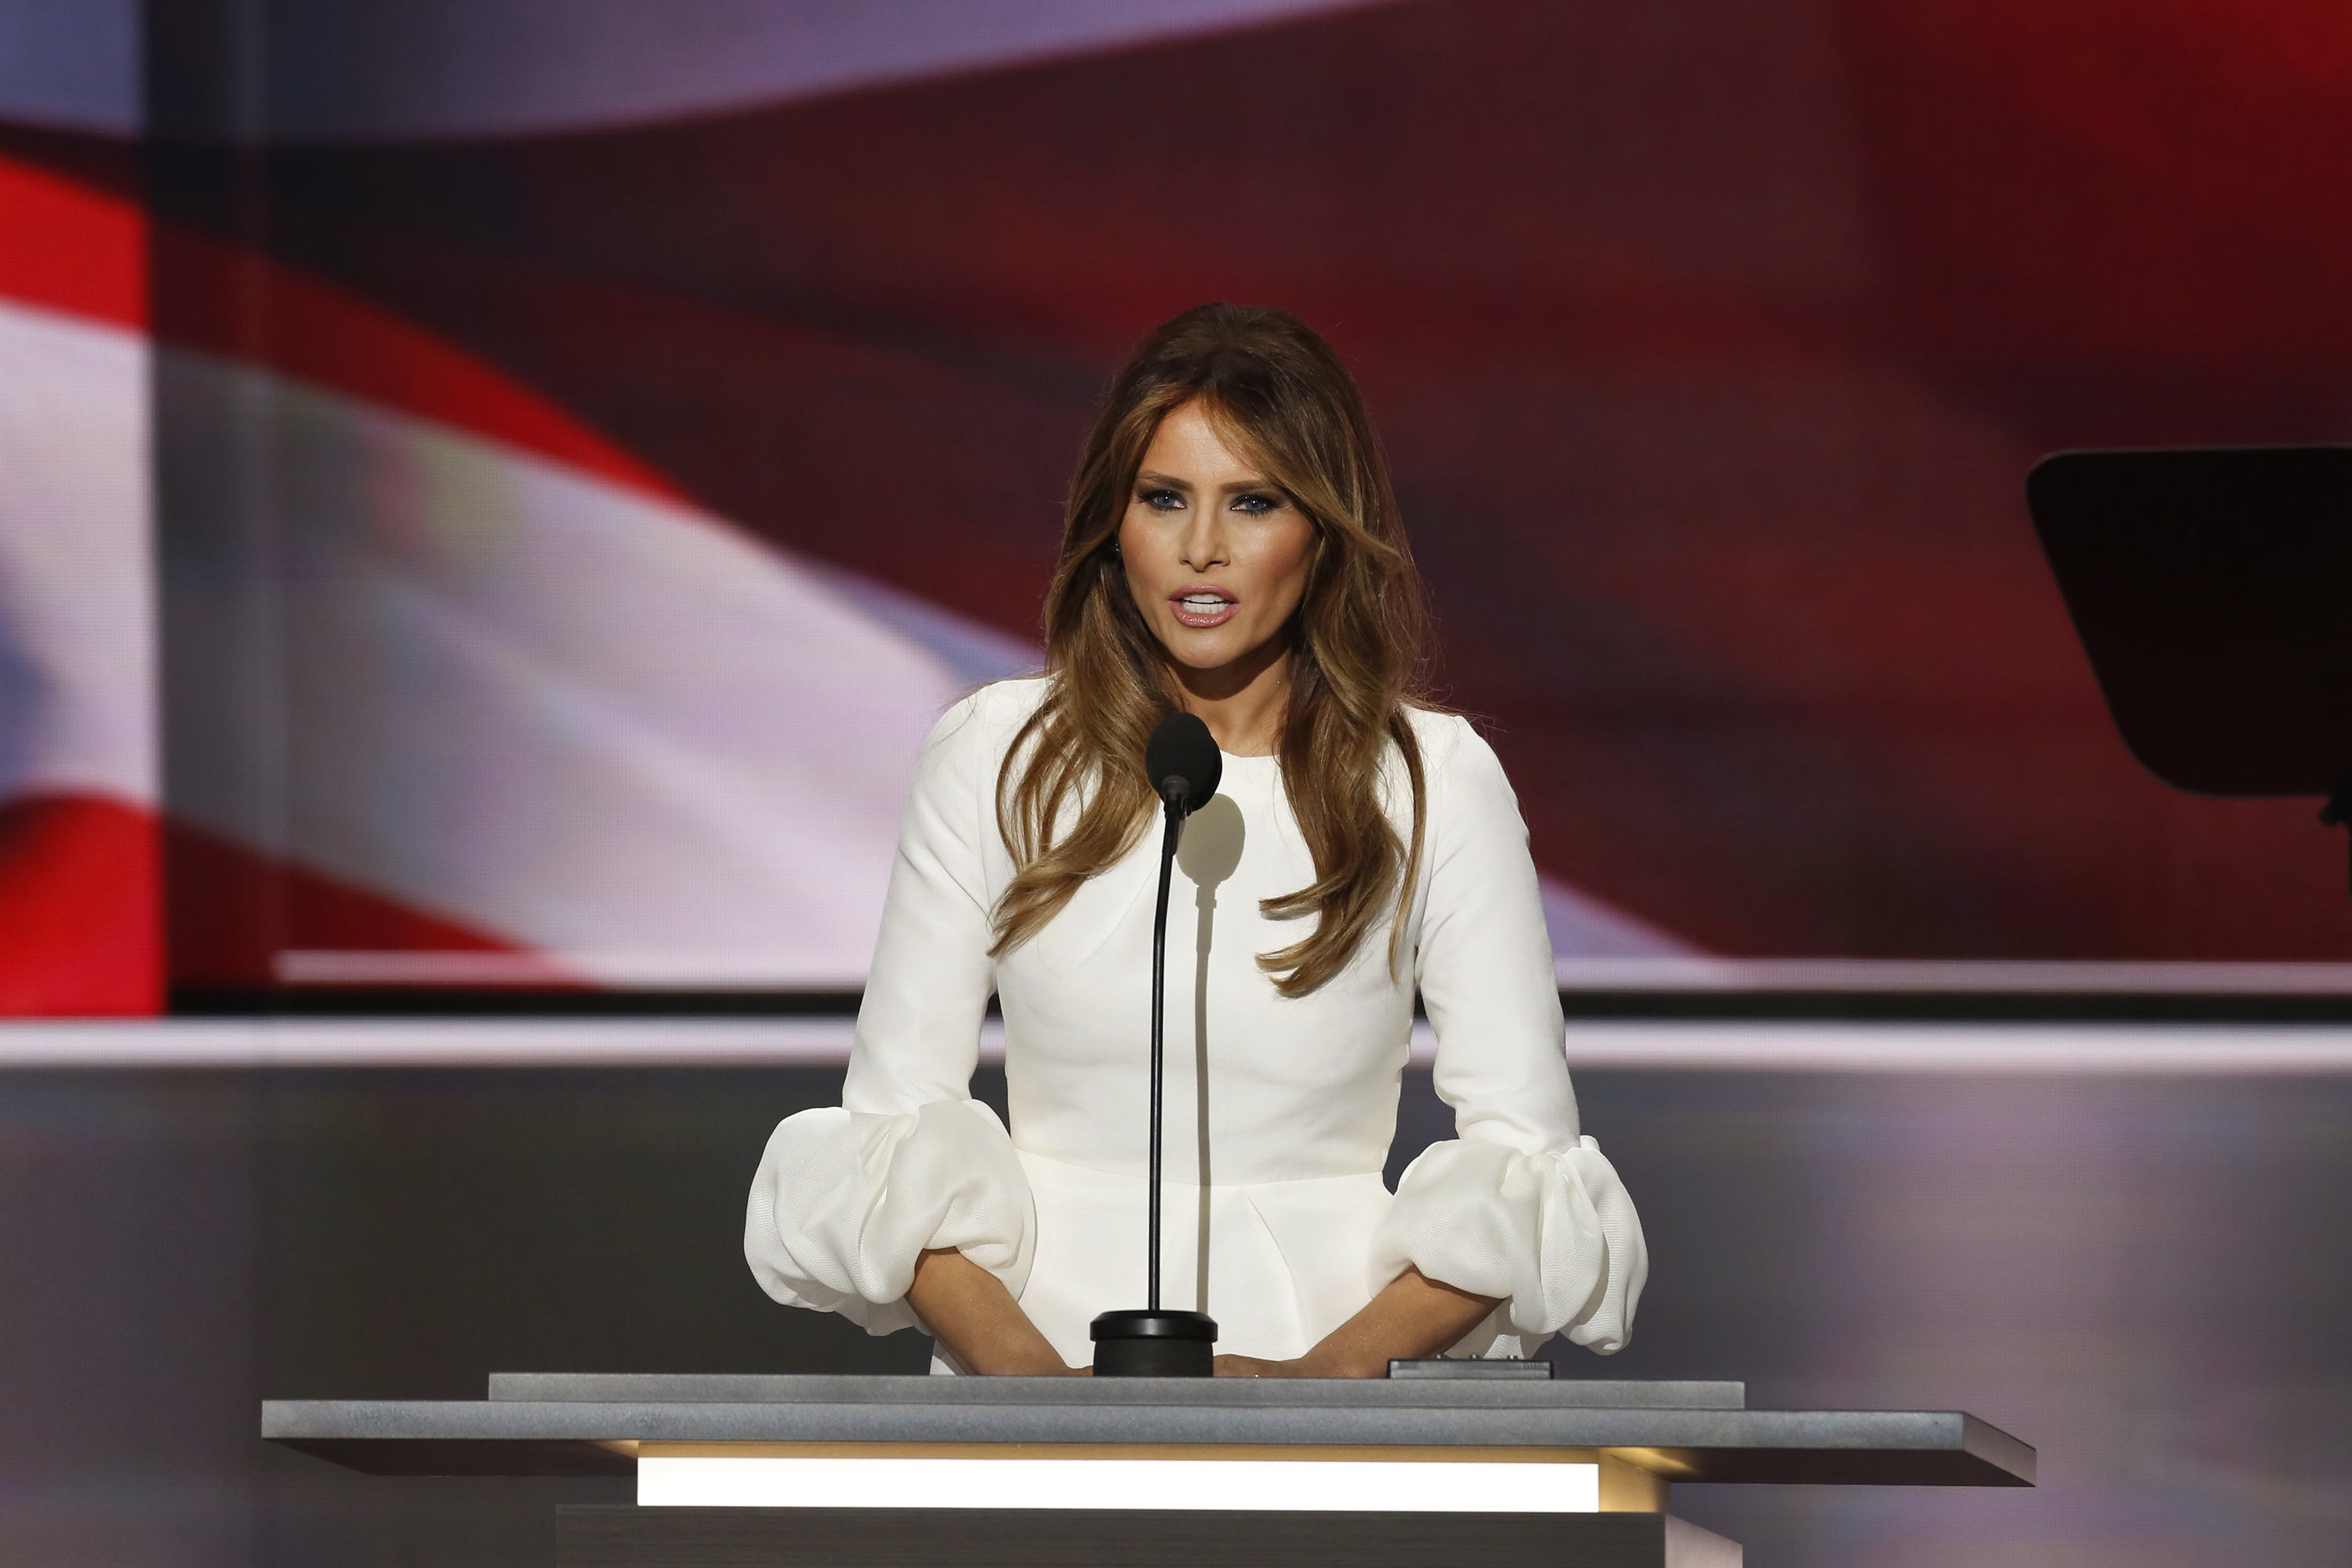 Melania Trump speaks during the Republican National Convention on July 18, 2016 in Cleveland, Ohio.